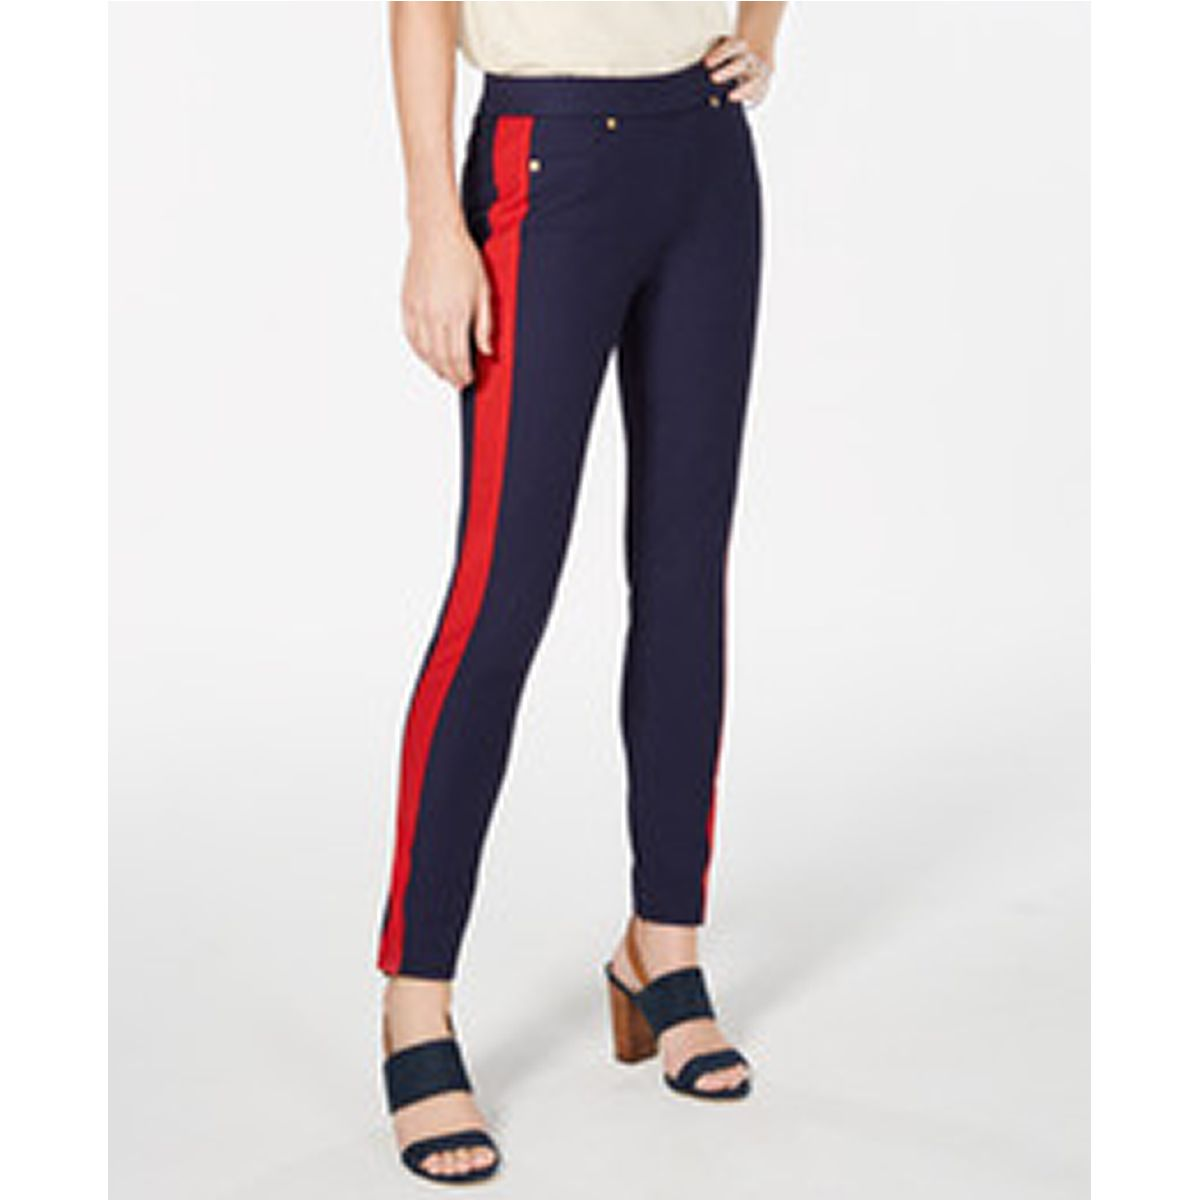 6df7cb80ceee55 Michael Kors Womens Pants - Macy's